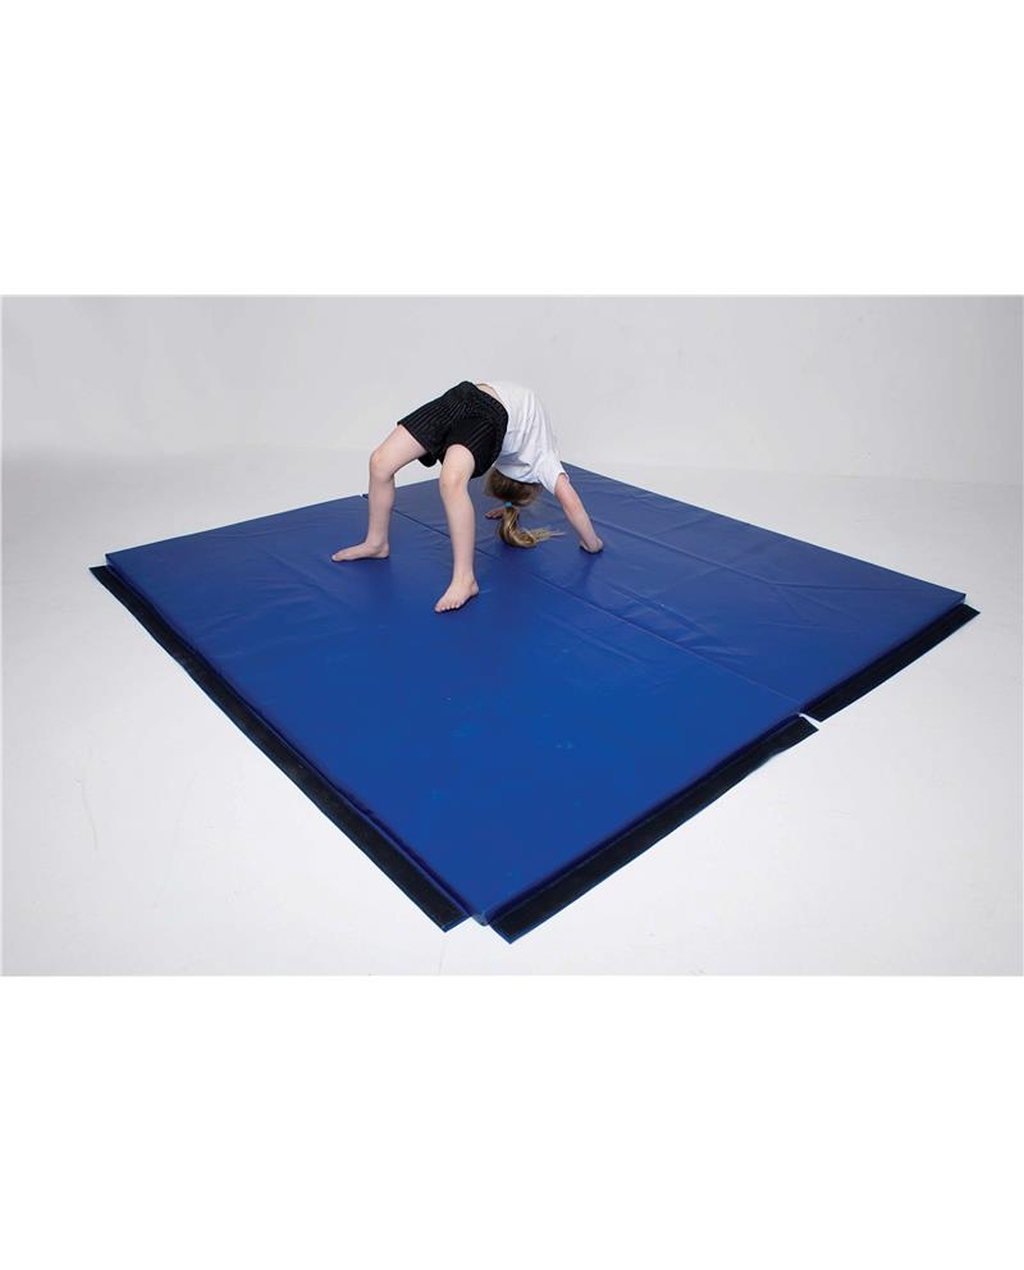 HEAVY DUTY LIGHTWEIGHT MAT W/ VELCRO LINK 2m x 1m x 40mm